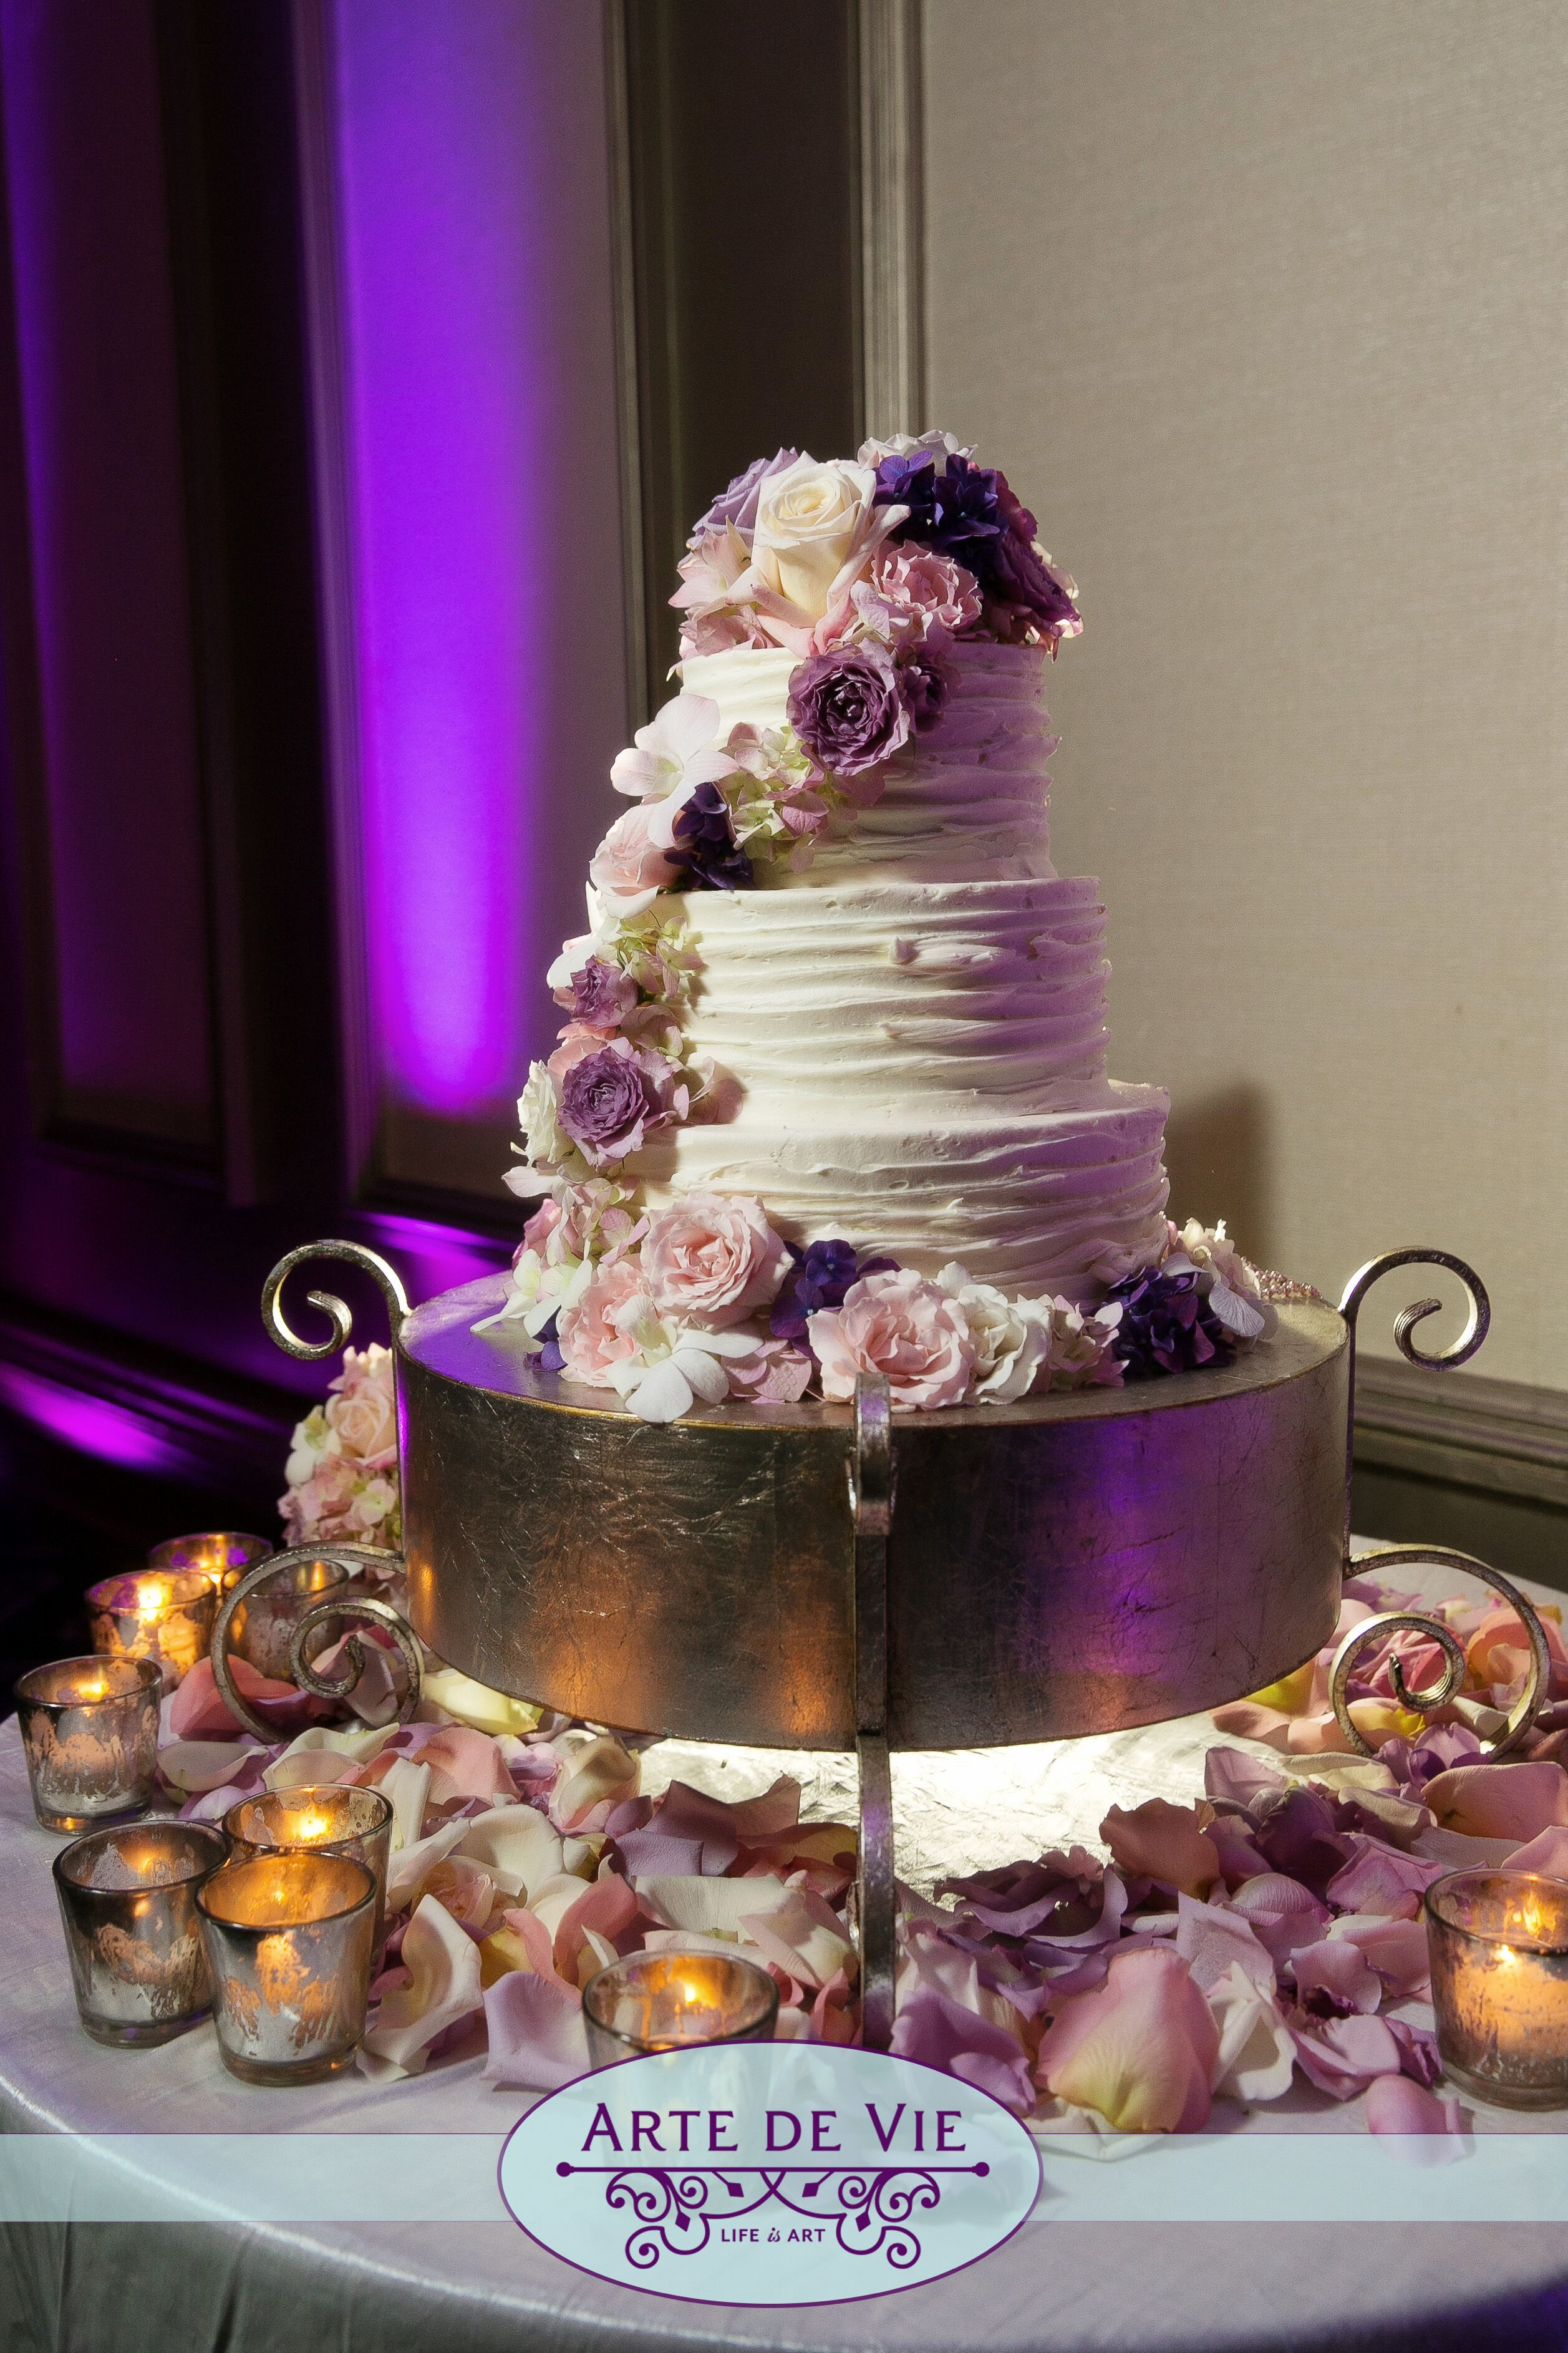 Bittersweet Confections Wedding Cakes New Orleans La